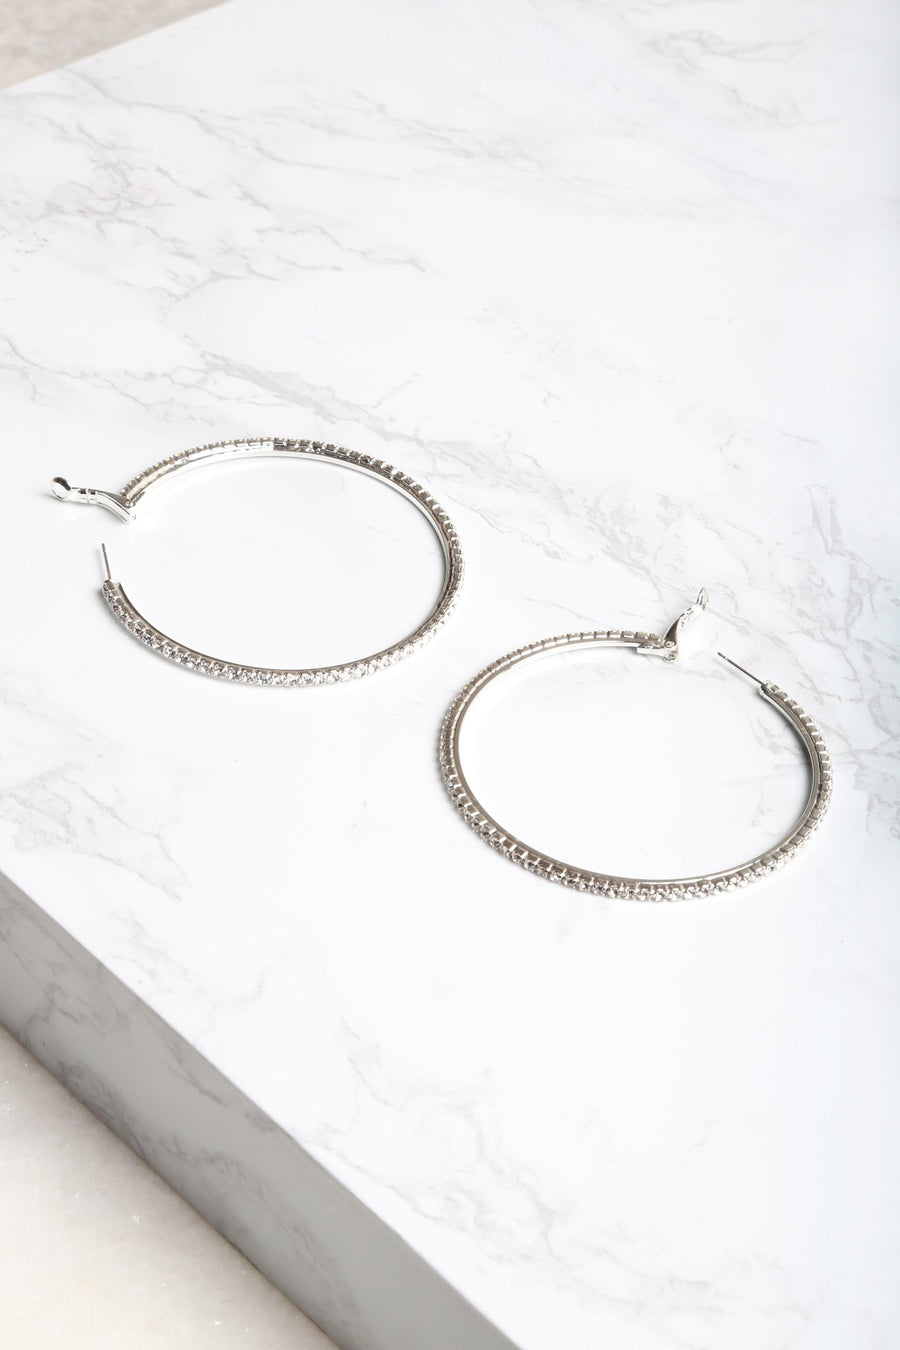 New Year, New Hoop Earrings - NEM Fashion Store